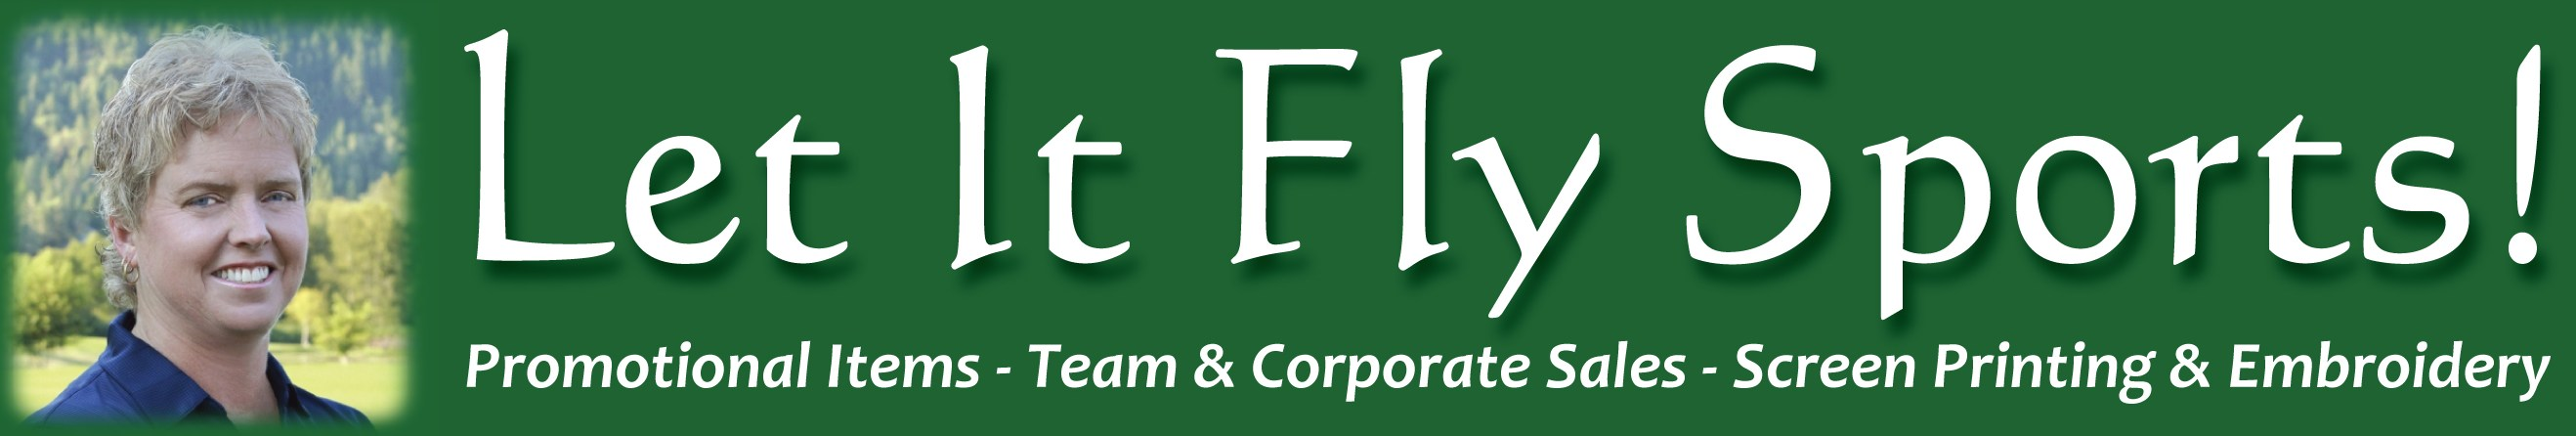 Let It Fly Golf USGTF Certified Professional Golf Teacher - Sports Equipment - Uniforms - Accessories